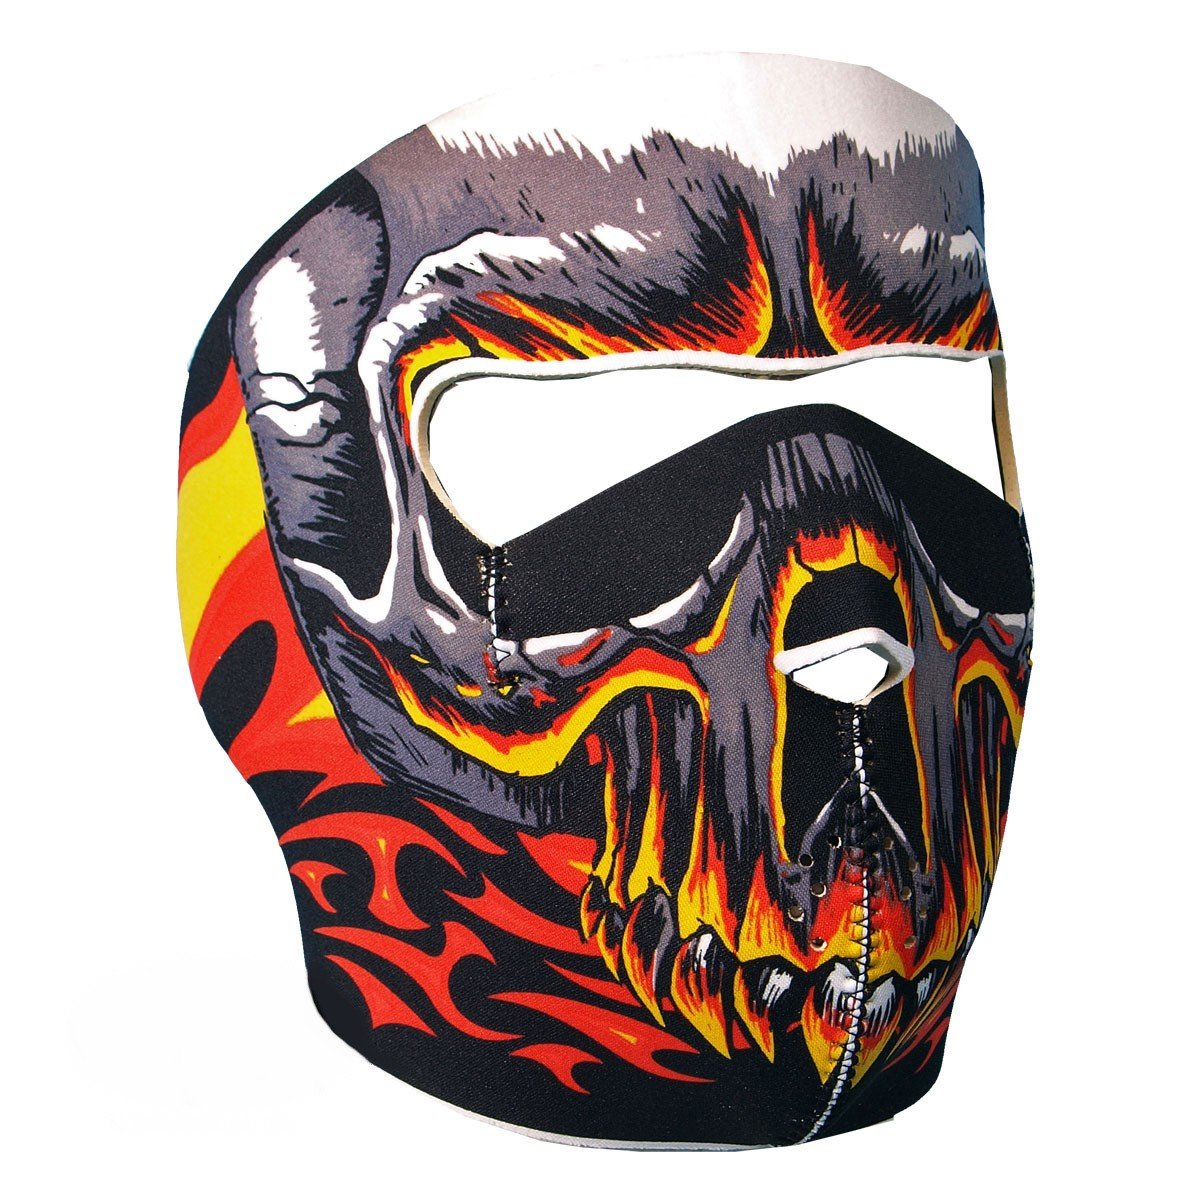 """Cagoule Masque Protection Neoprene """"Hell Skull"""" - Taille unique réglable - Airsoft - Paintball - Outdoor - Ski - Snow - Surf - Moto - Biker - Quad"""